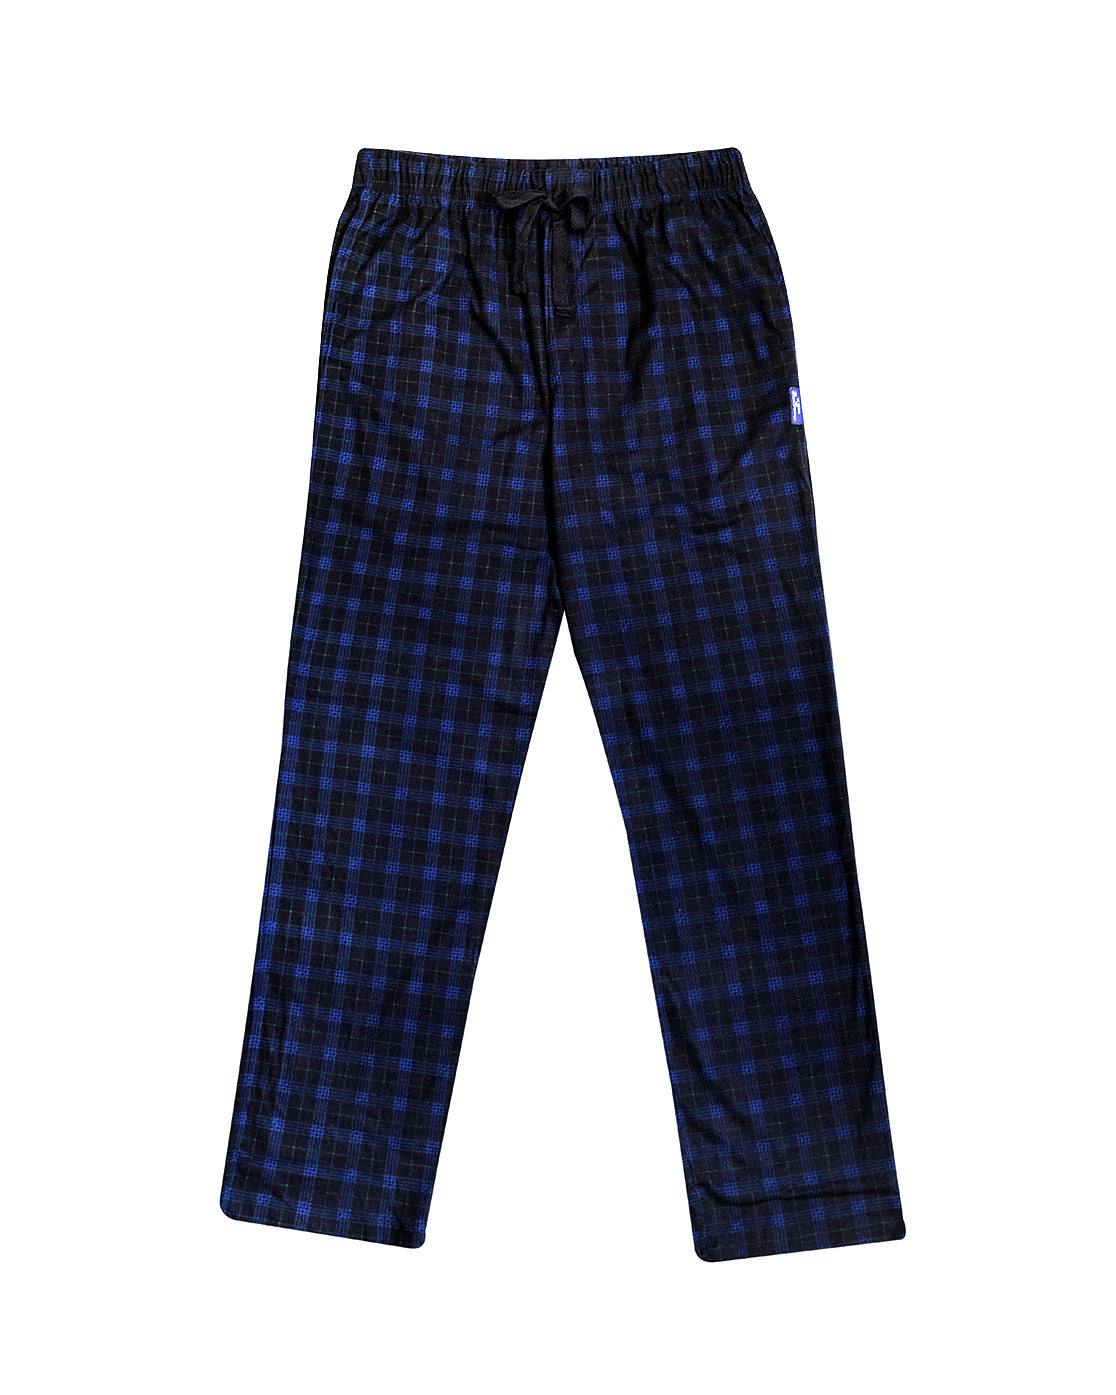 Men's Microfleece PJ Pants - Black/Blue